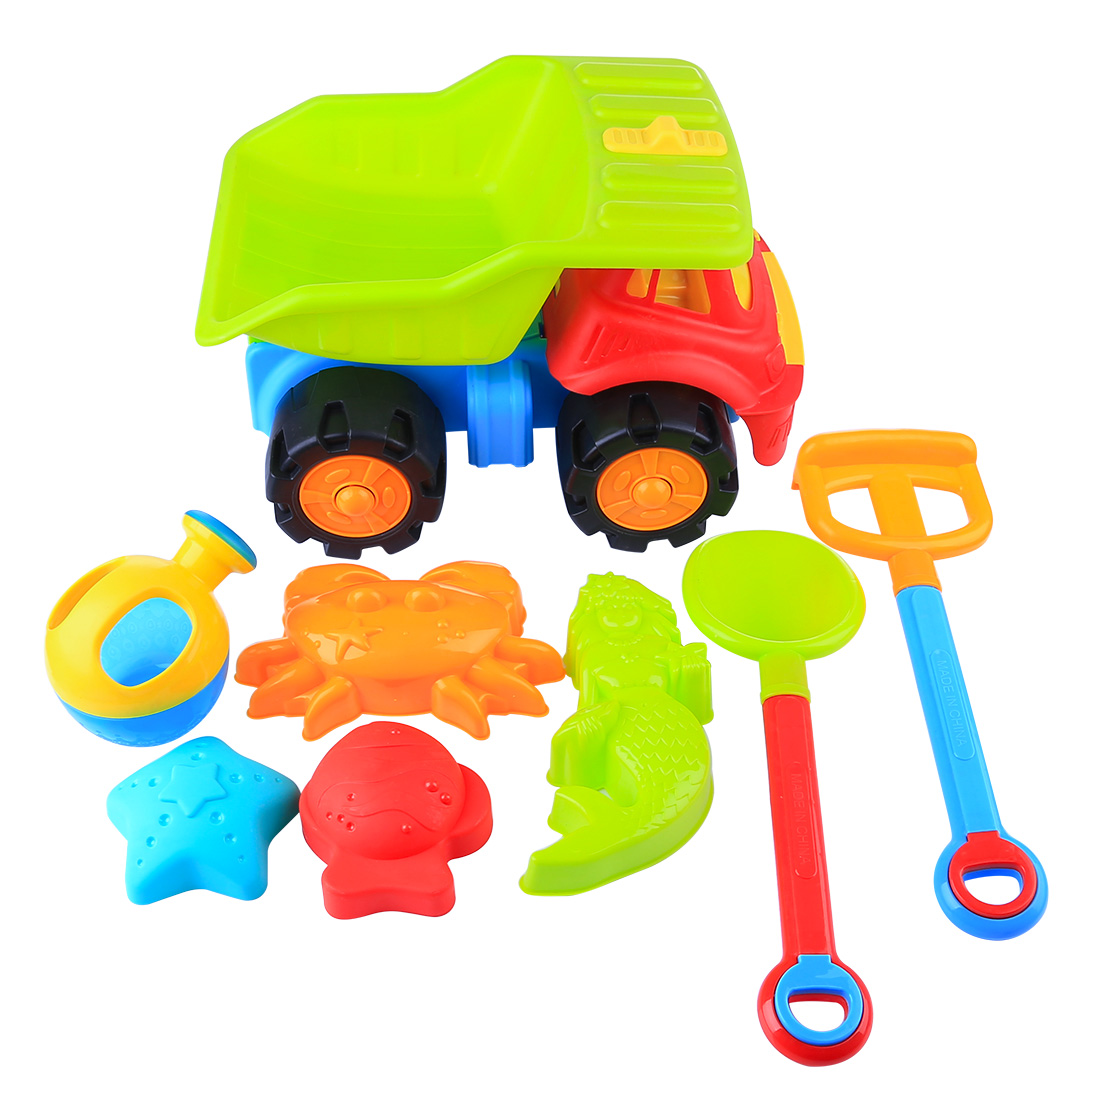 8Pcs Extra-Large L Summer Beach Sand Toys Plastic Beach Car Vehicle Playset Sand Clay Mold Sand Water Playing Tool Toy For Kids